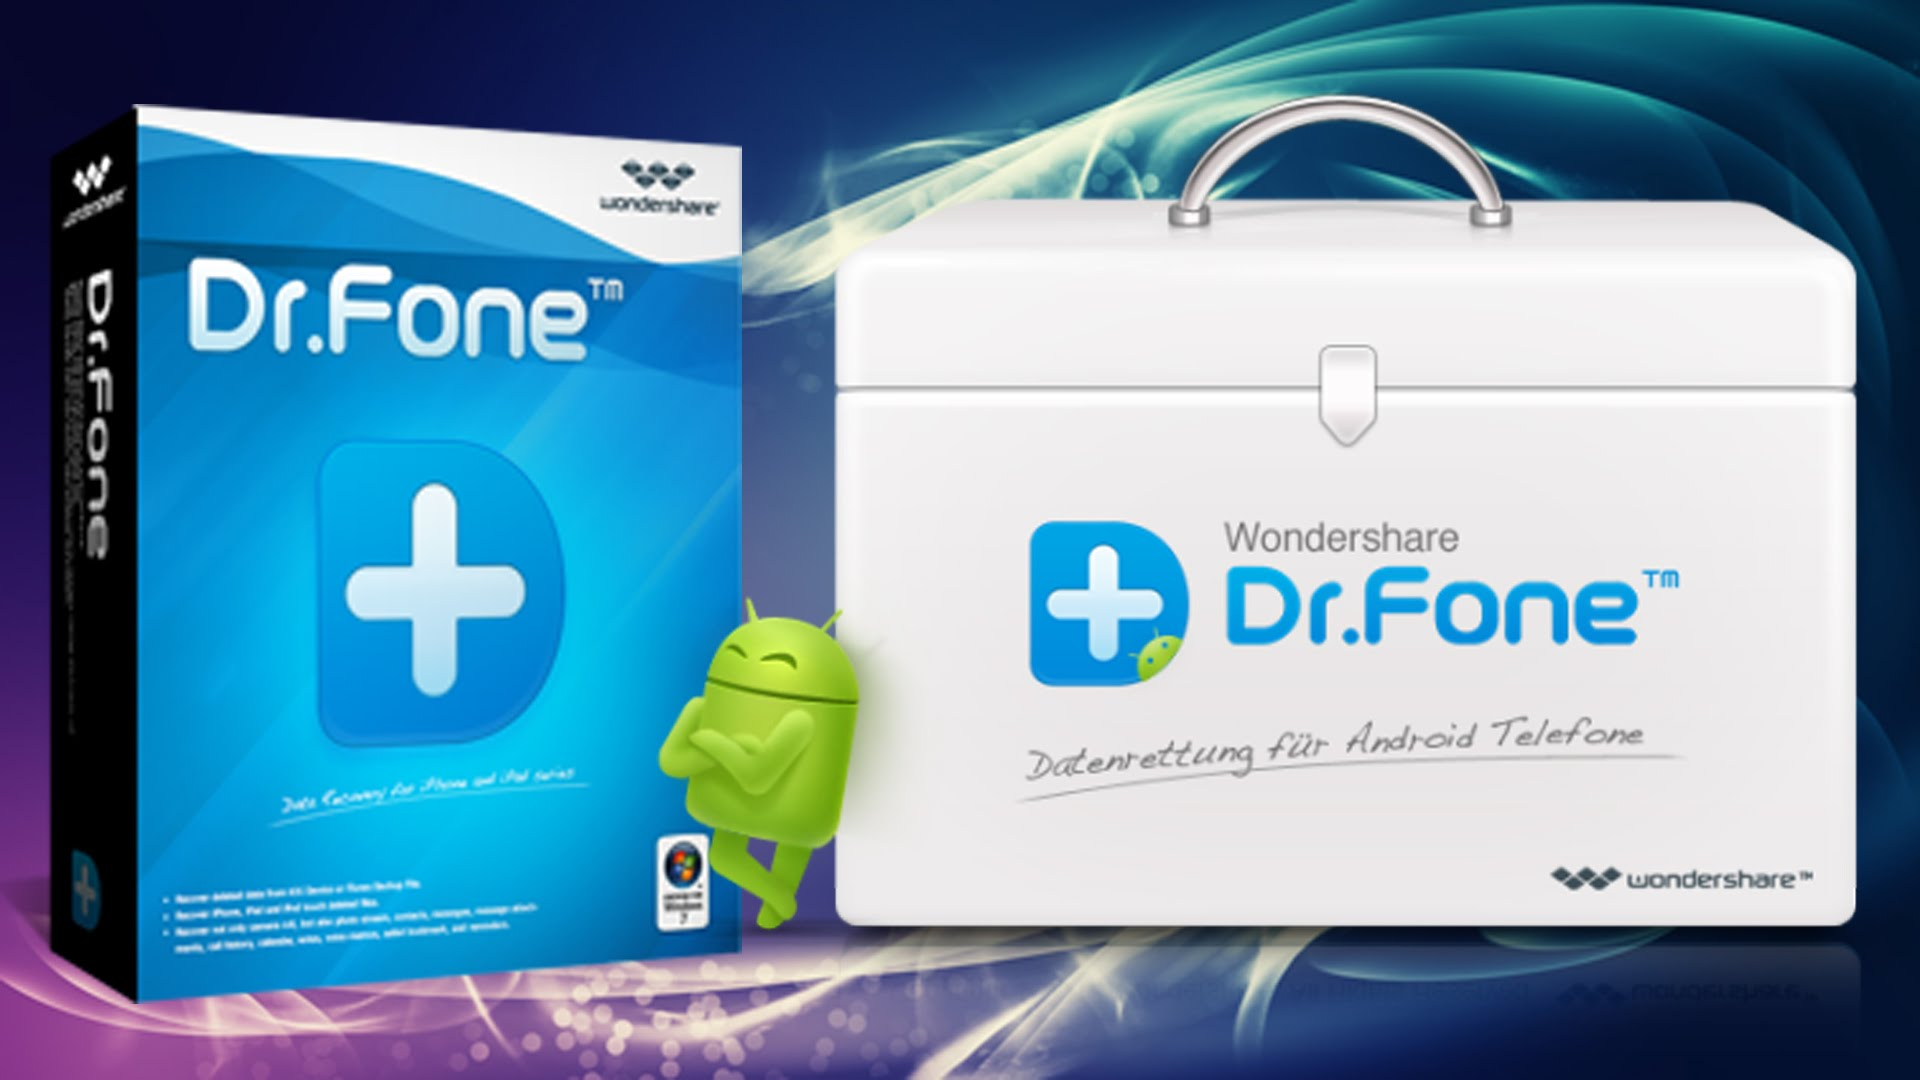 Wondershare Dr.Fone 2020 Crack